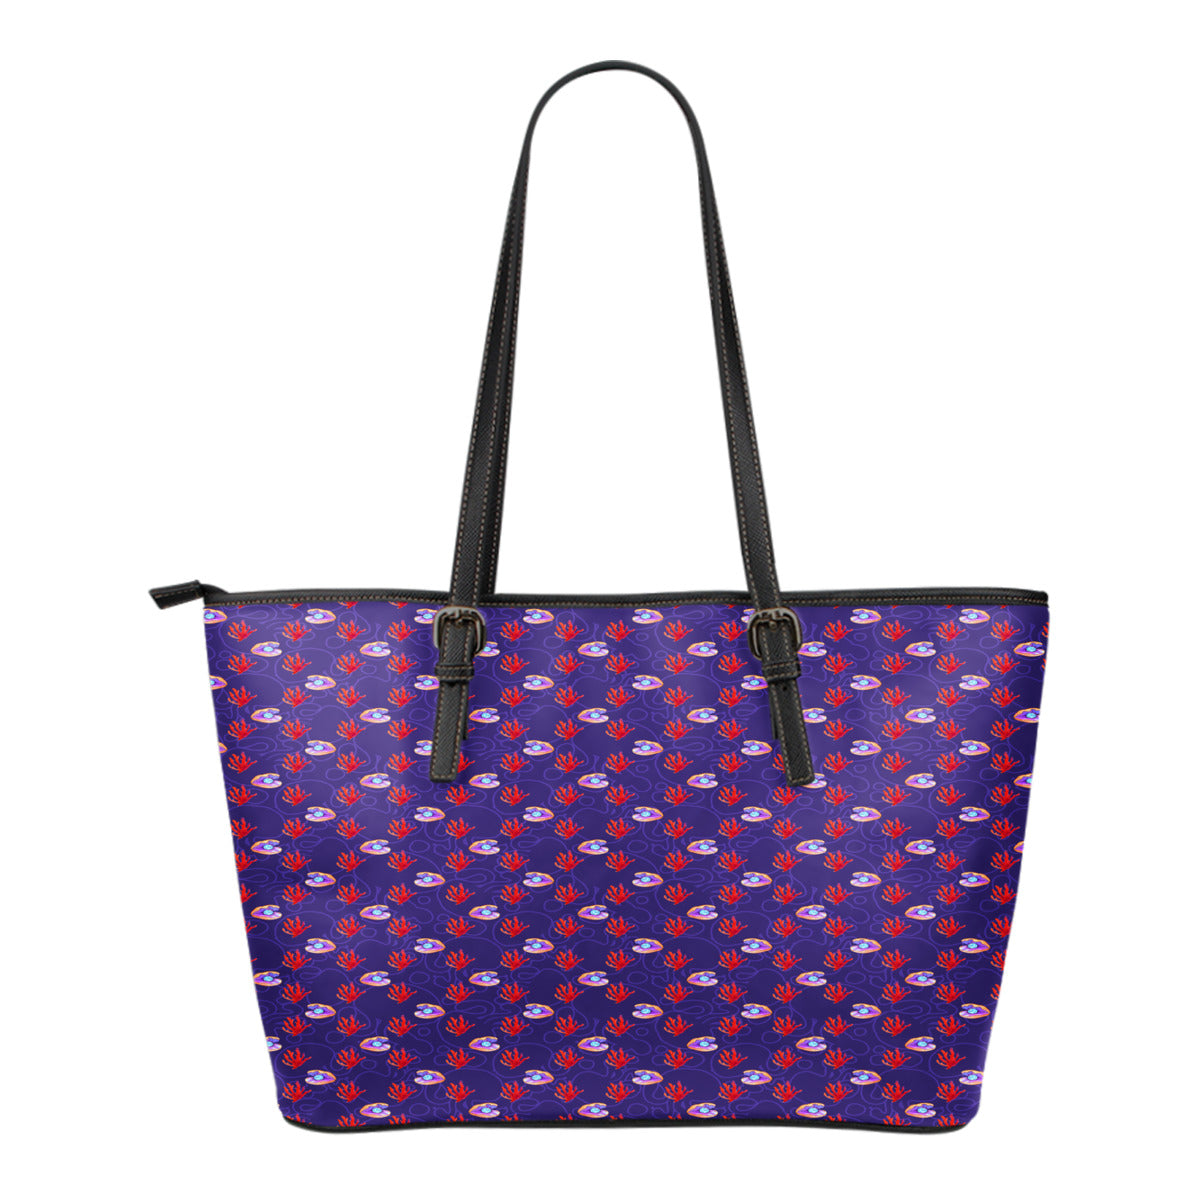 Mermaid Themed Design C5 Women Small Leather Tote Bag